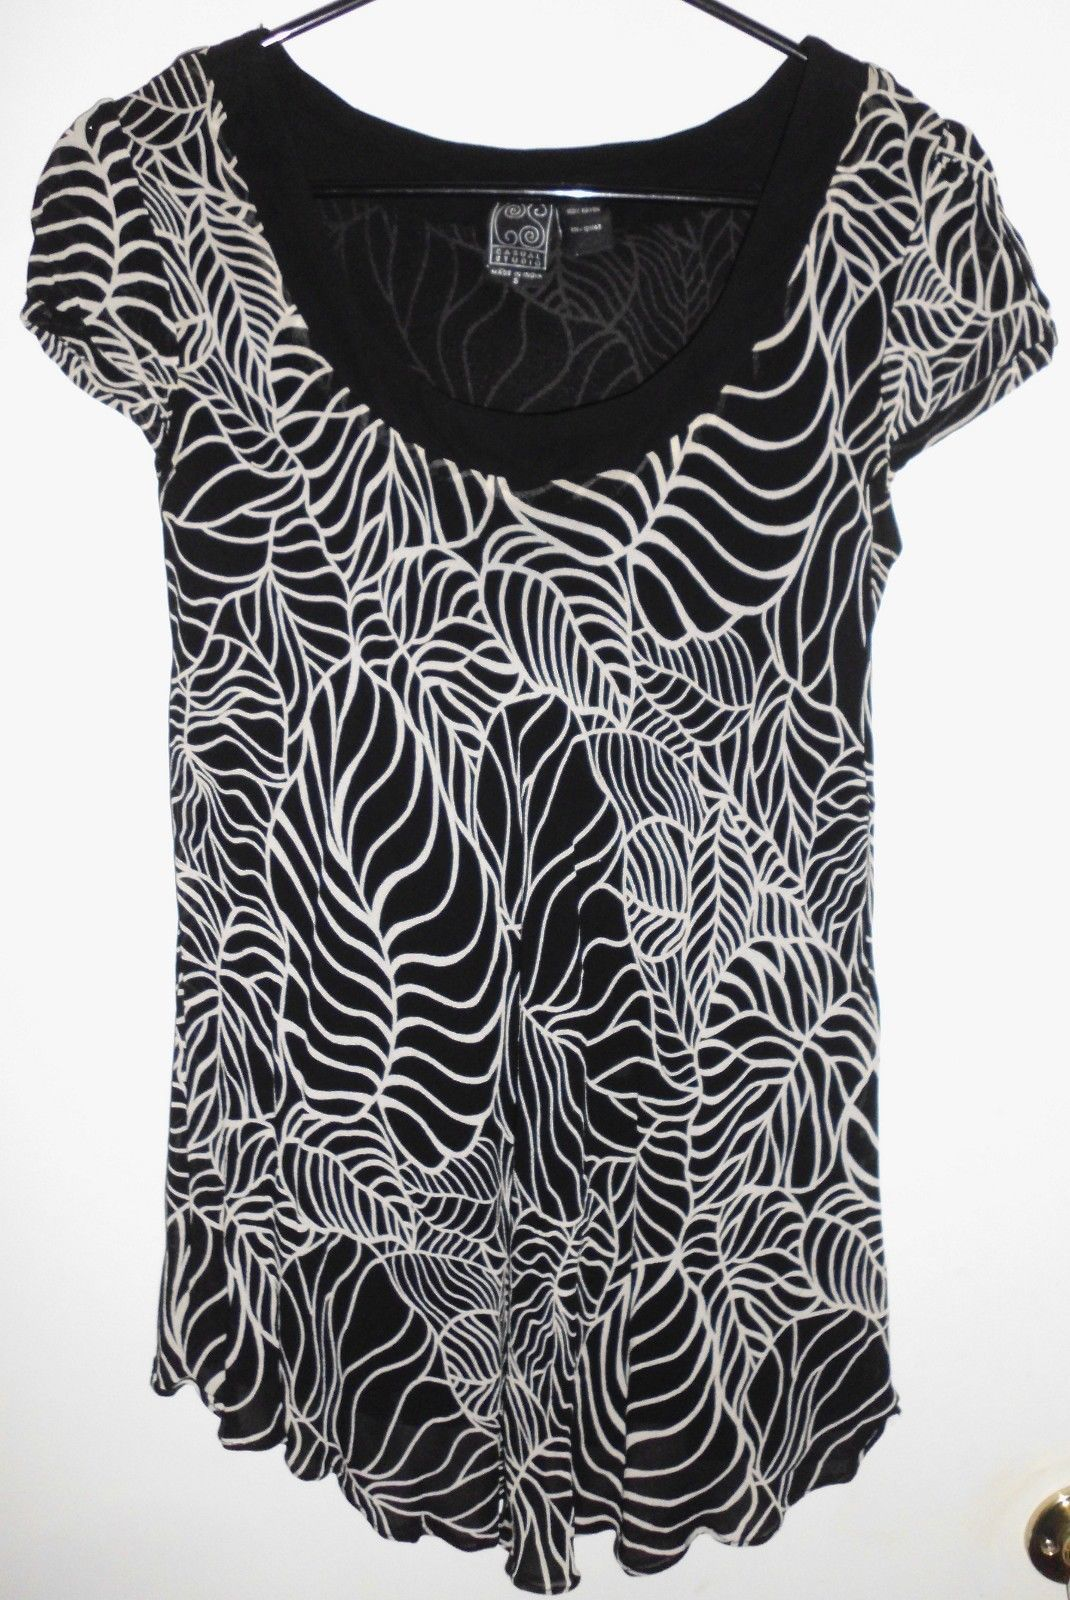 Primary image for CASUAL STUDIO Shirt SMALL Black White Leaves Lined Short Sleeve Top INDIA Women